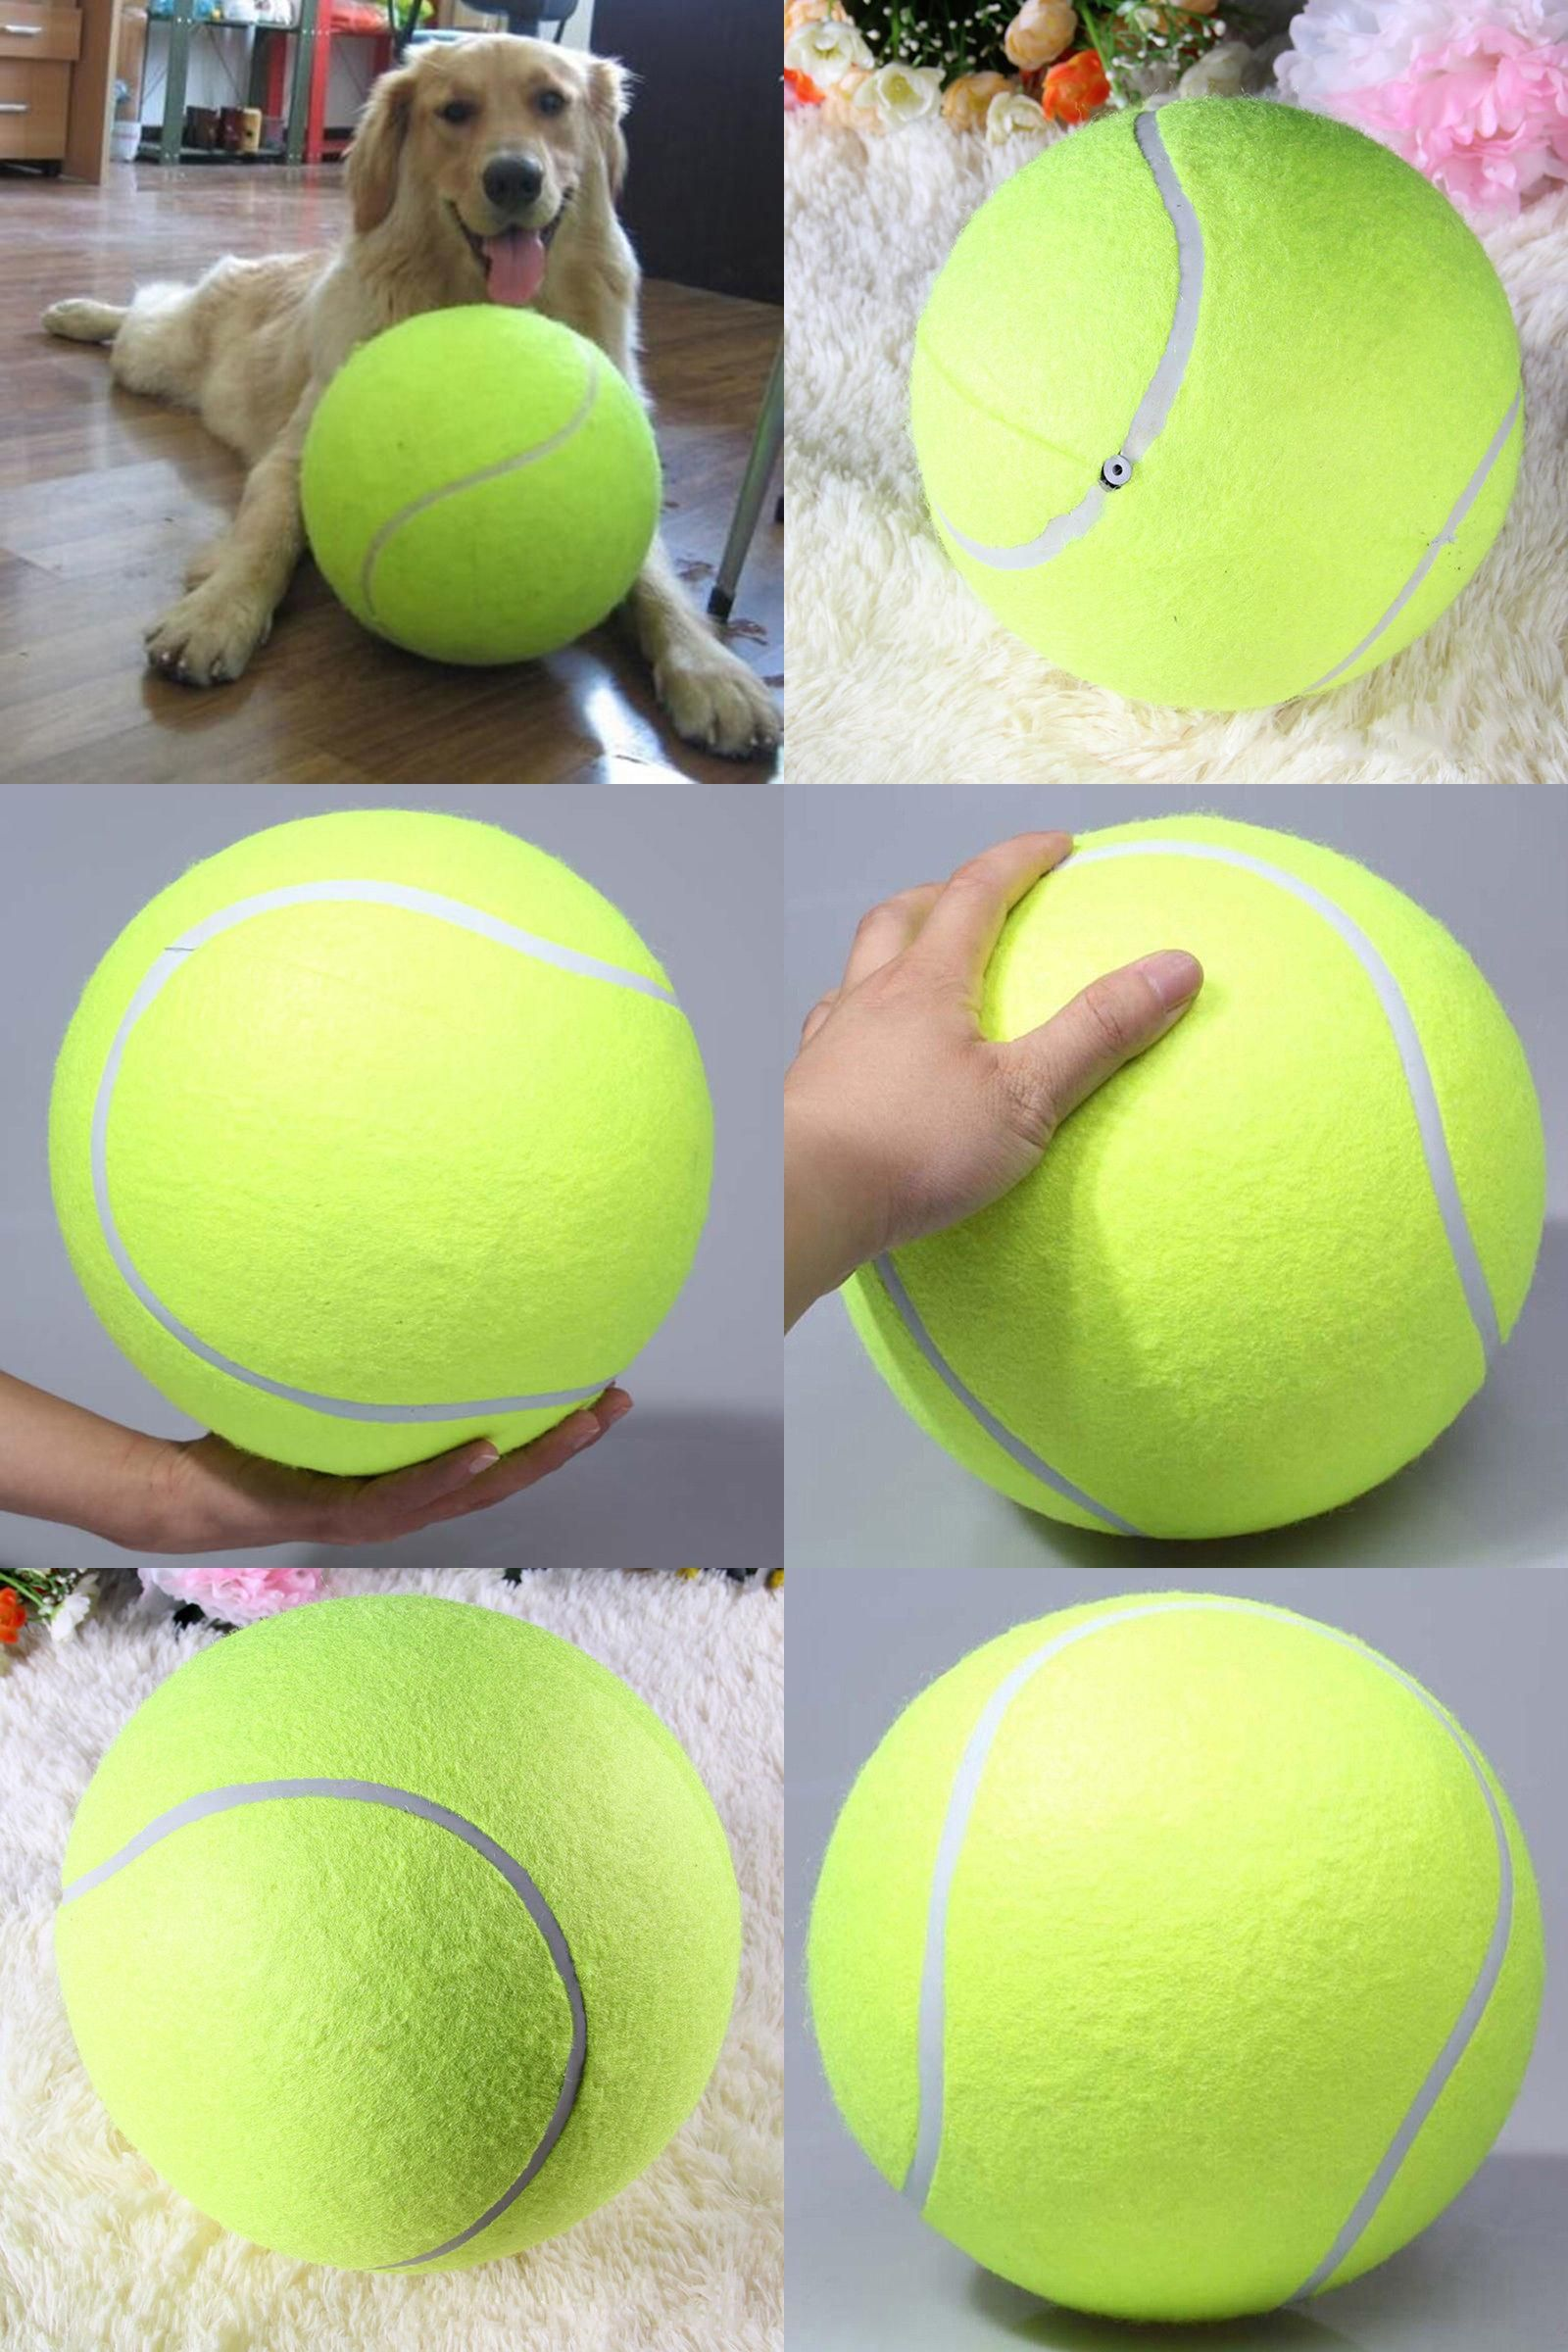 Visit To Buy 24cm 9 5inch Giant Tennis Ball For Pet Chew Toy Big Inflatable Tennis Ball Signature Mega Jumbo Pet Toy Ball Ou Dog Toy Ball Dog Ball Pet Toys